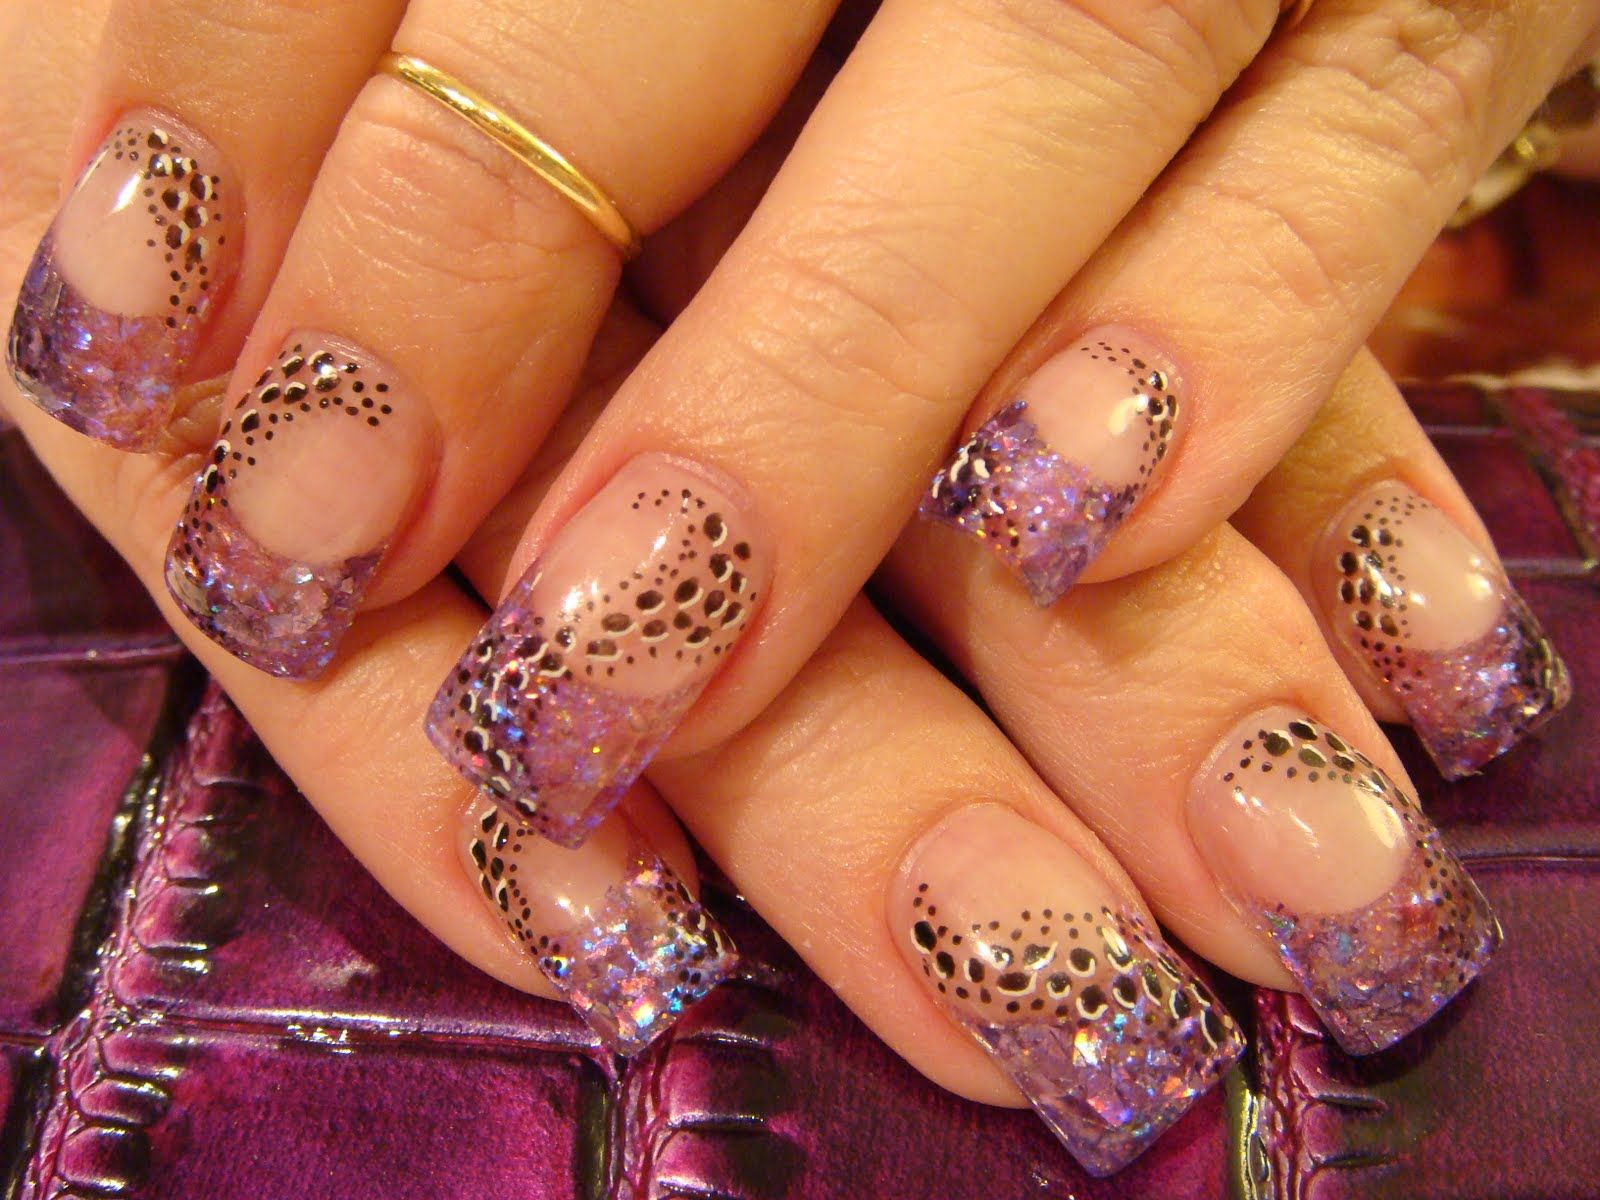 Fingernails Designs Idea do you have brittle nails that just wont grow long no matter how careful you are do you bite your nails a lot and so have chewed up and jagged nails that Inspiring Acrylic Nail Designs Ideas